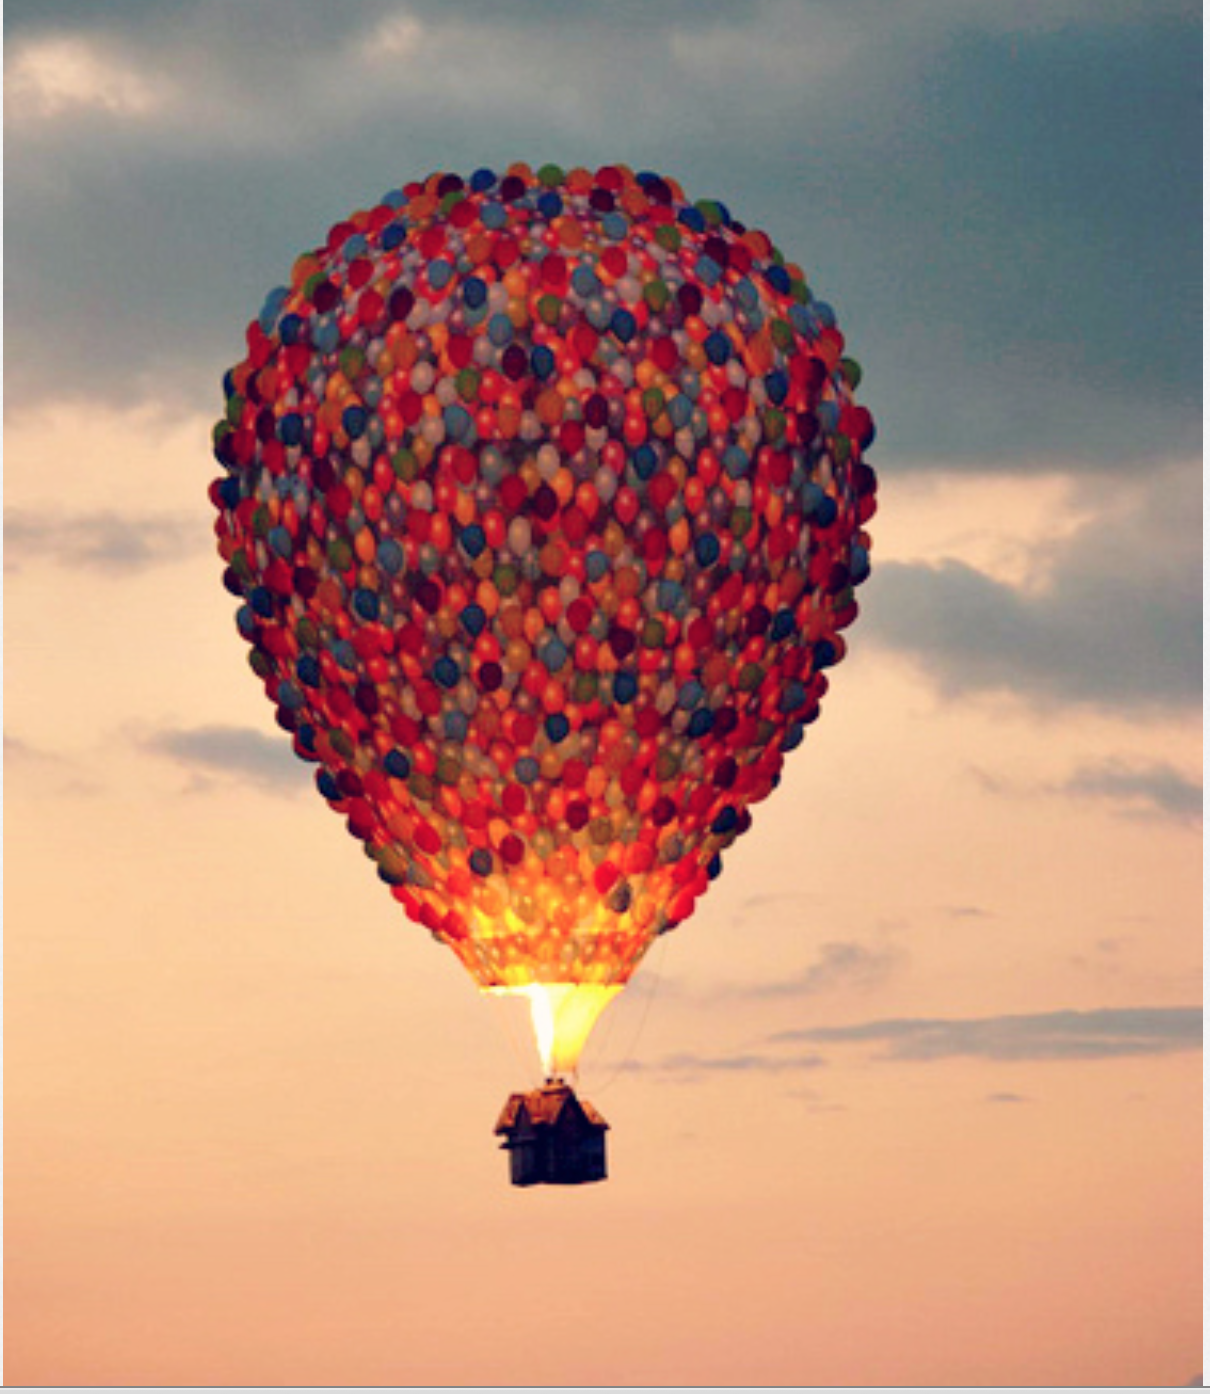 Collage Photography Hot Air Balloon Http Weheartit Com Entry 150731229 Via Tati Ramos29 Utm Campaign Share Ut Hot Air Balloon Rides Hot Air Balloon Hot Air